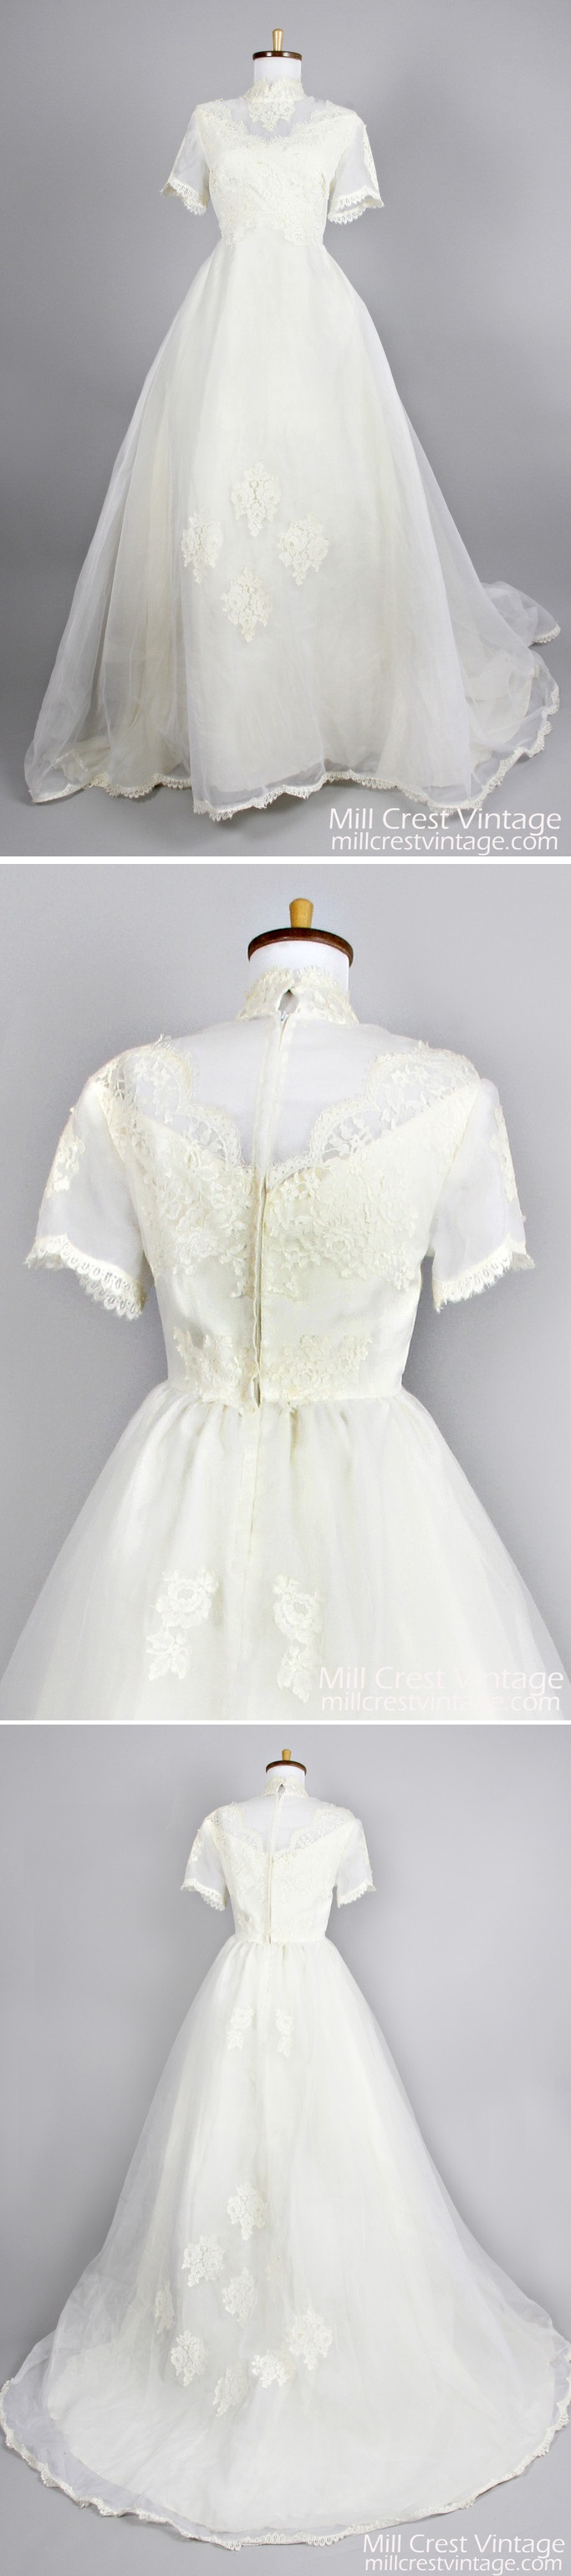 Gorgeous vintage s wedding gown wedding stuff pinterest